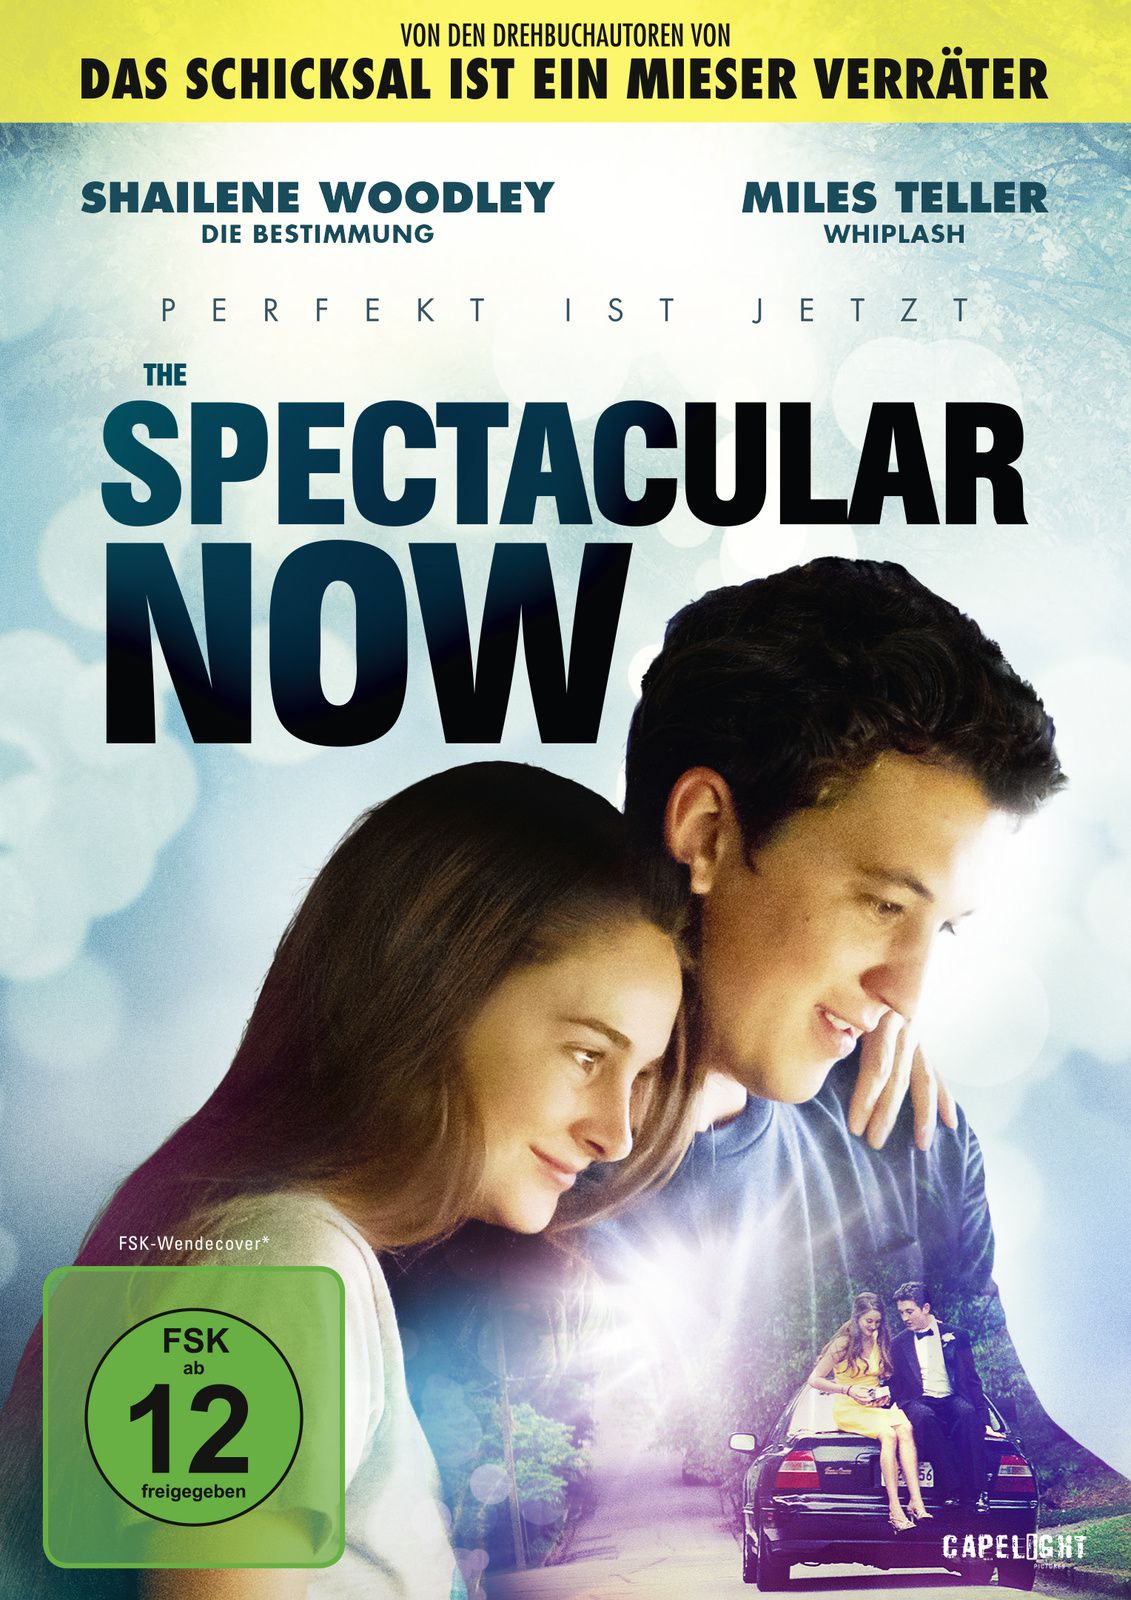 Filmtipp: 'The Spectacular Now'